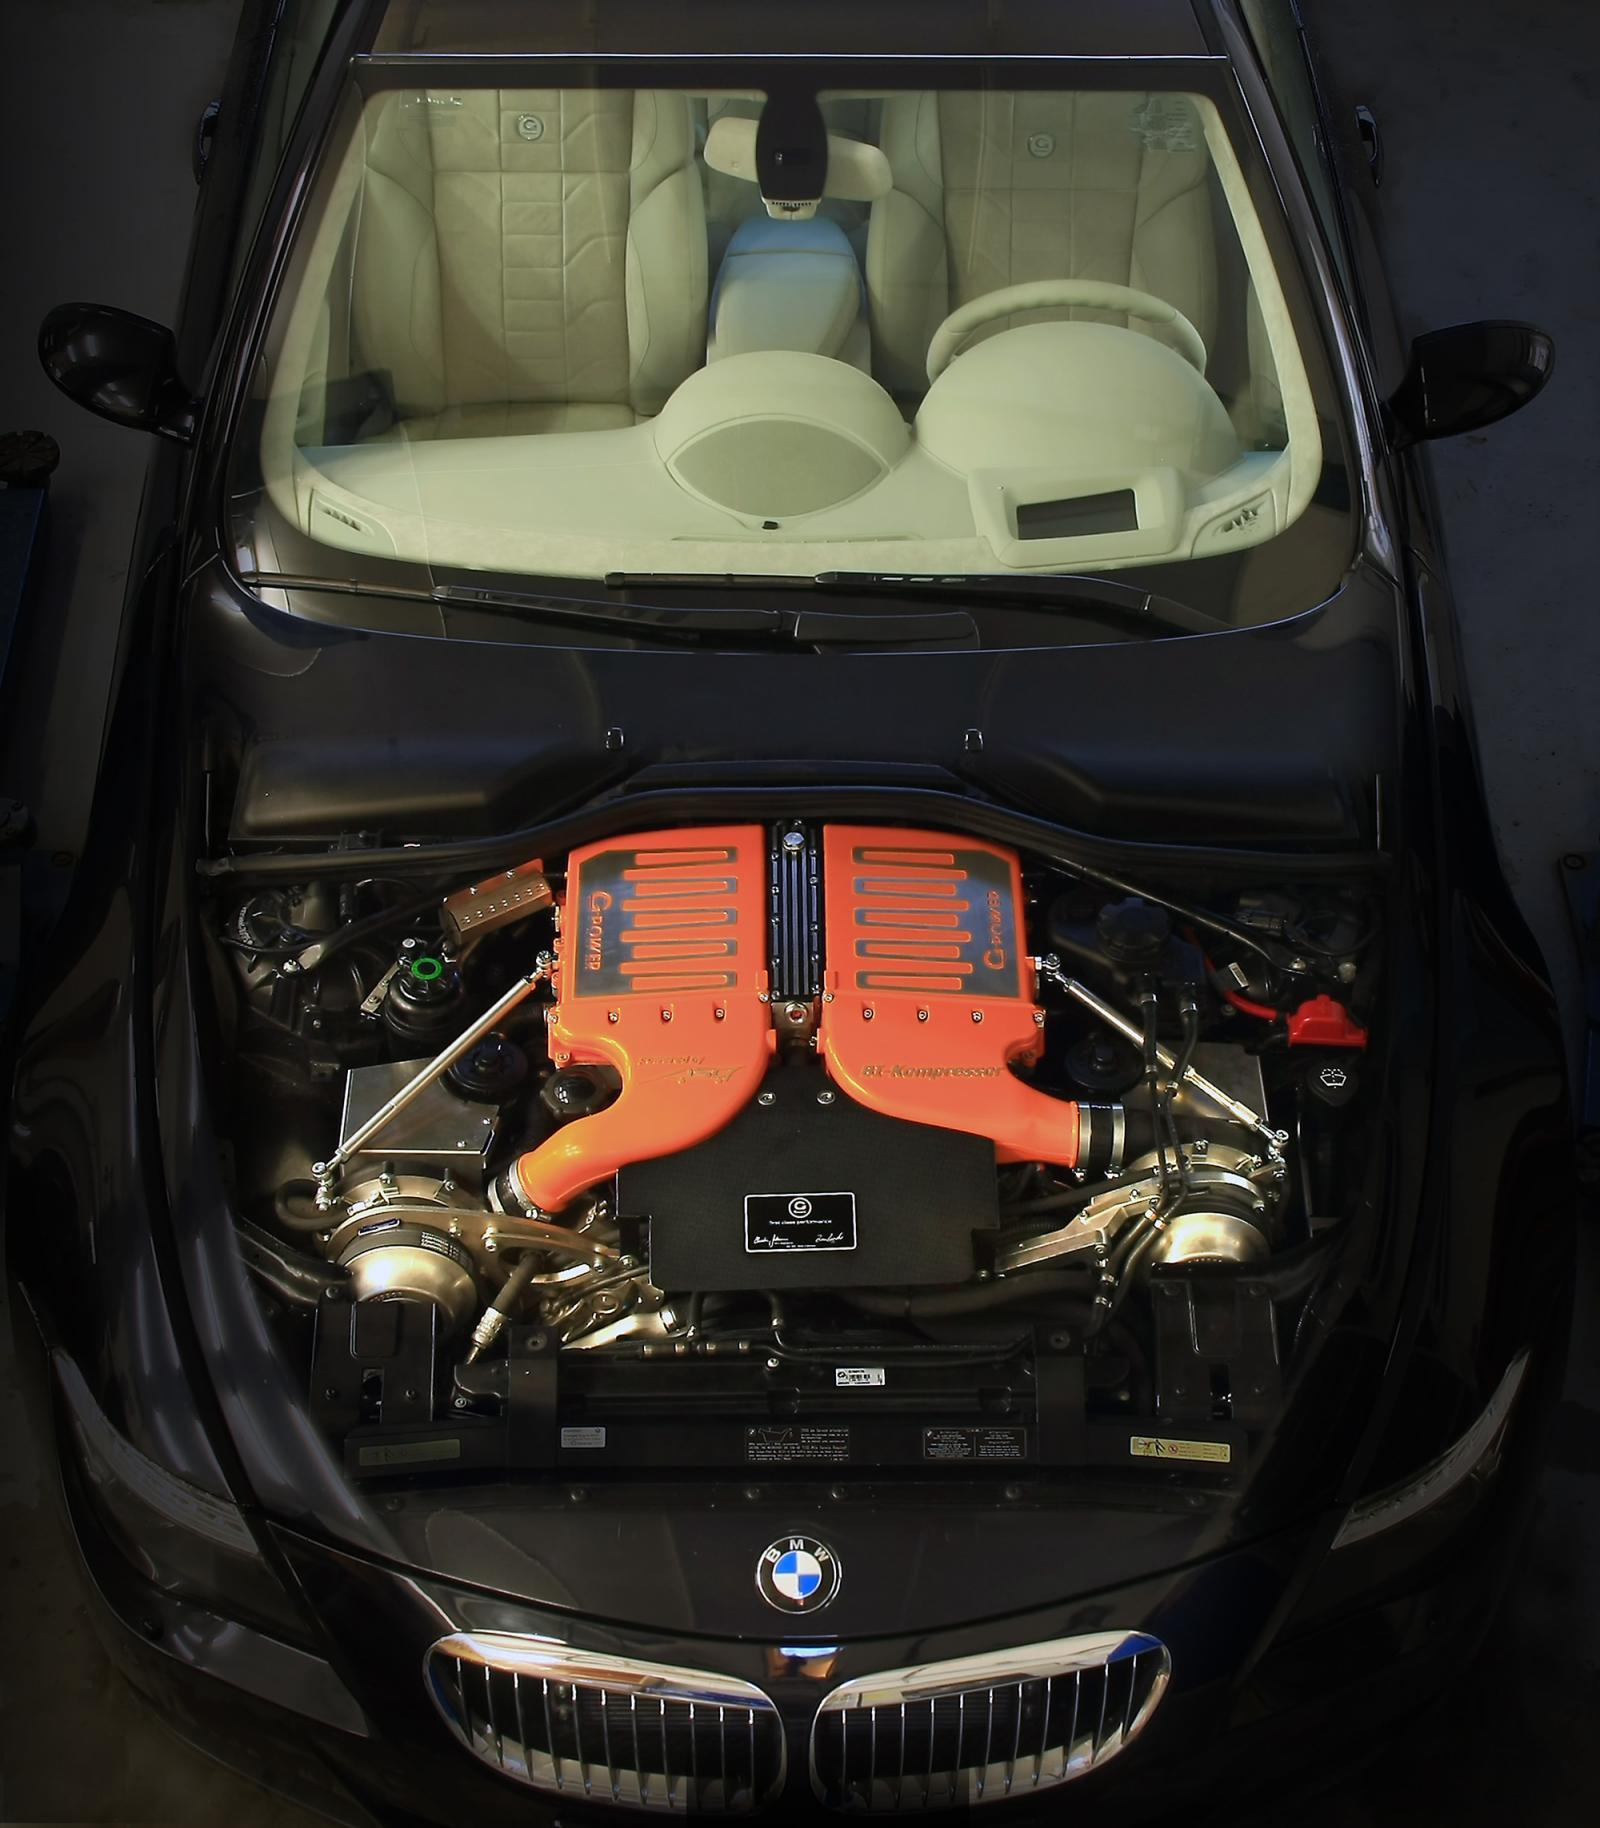 Foto de G-Power BMW M6 Coupé Interior (2/14)